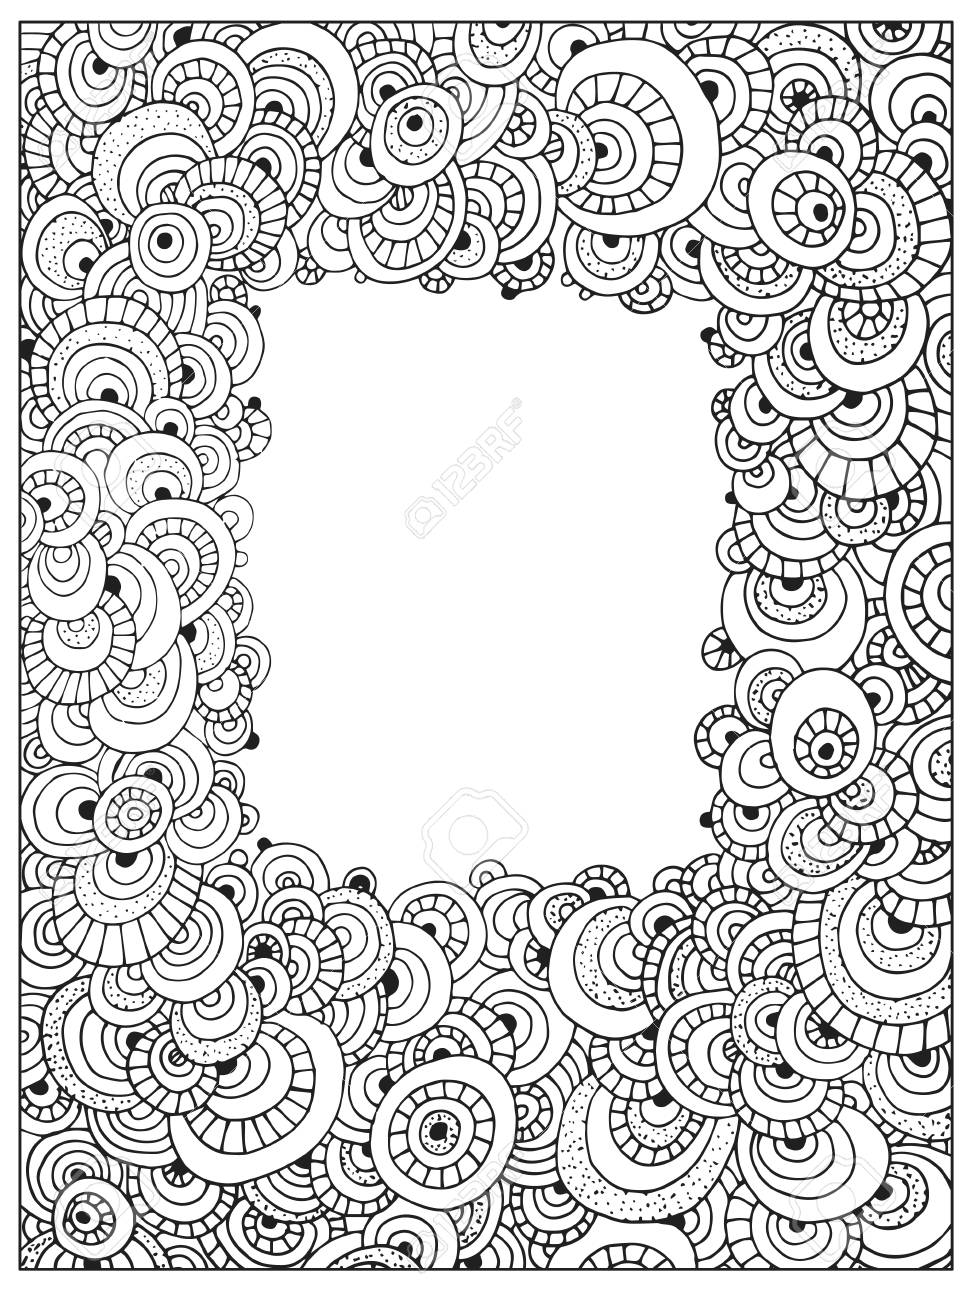 Difficult Circle Uncolored Adult Coloring Book Page. Abstract ...